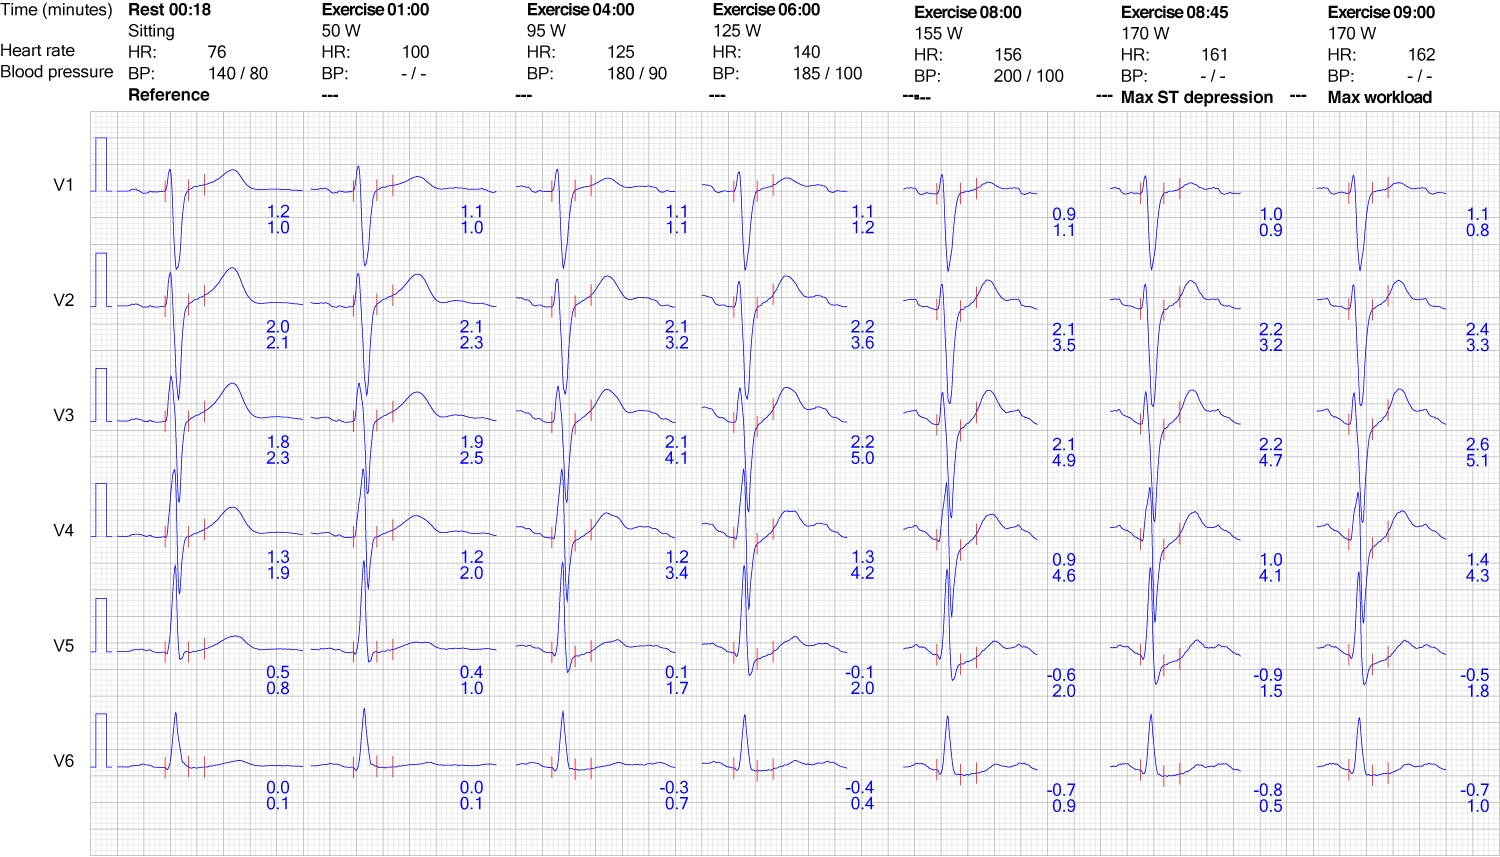 Figure 9. ECG reaction in chest leads during exercise.